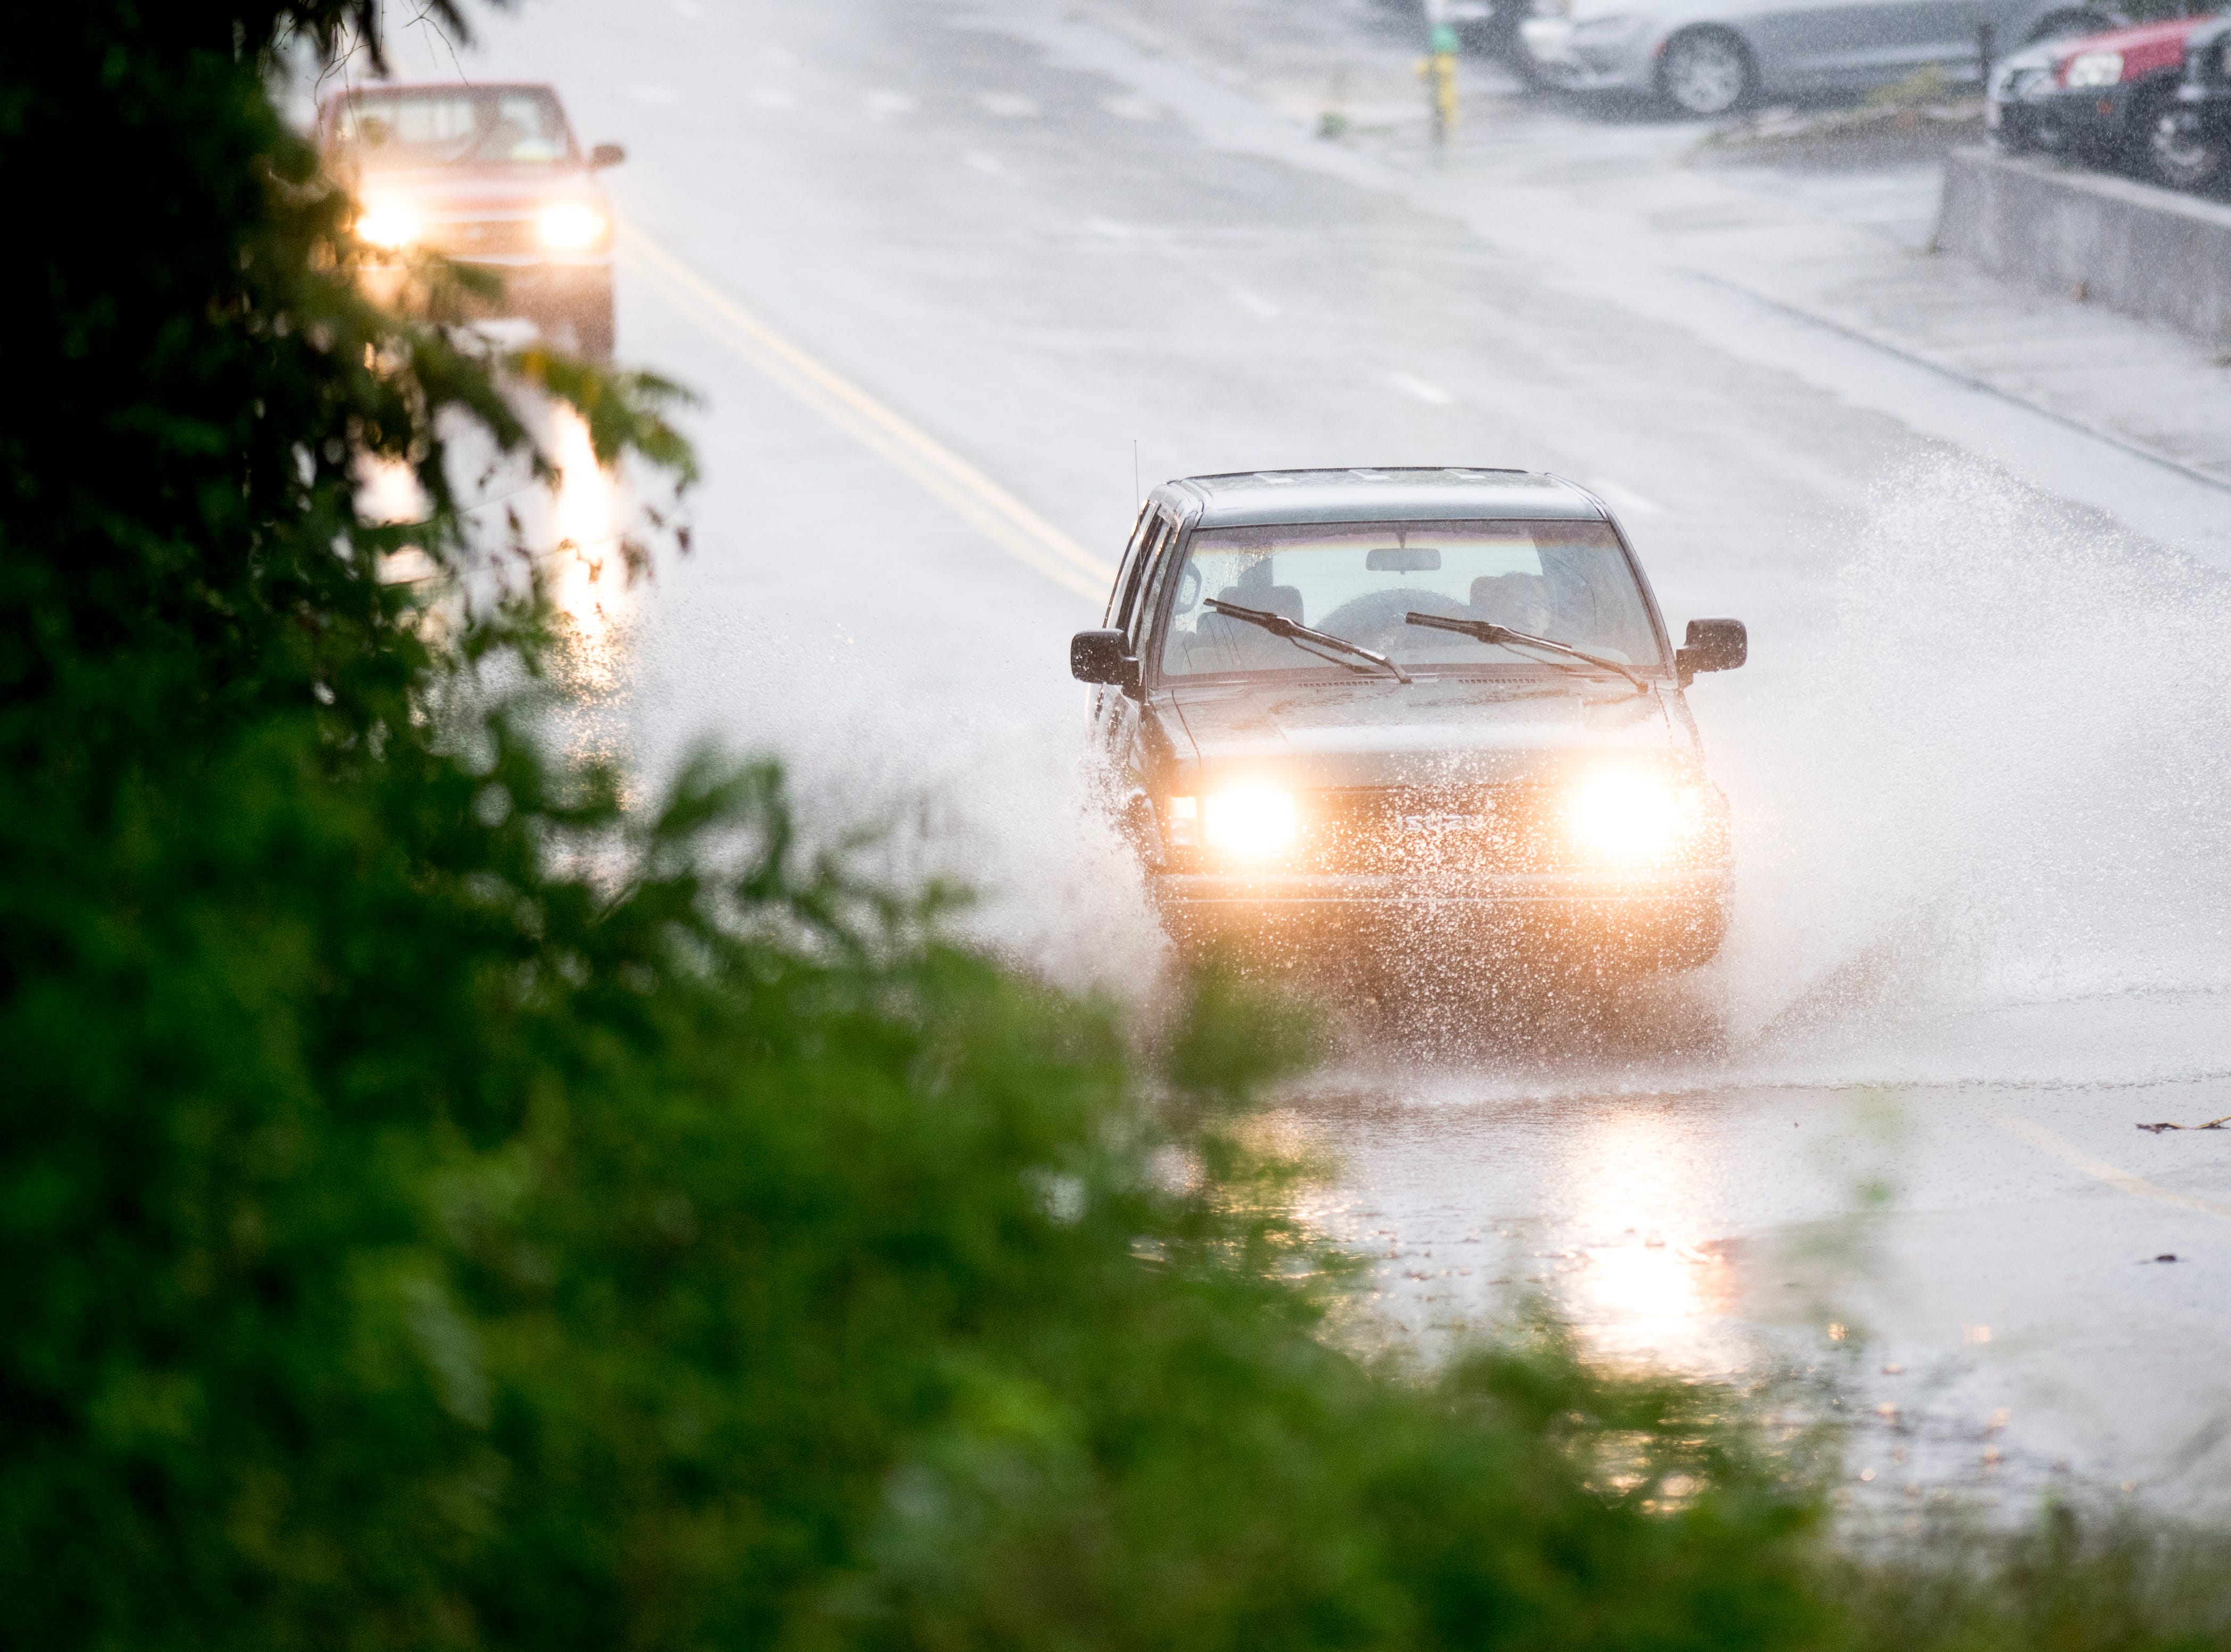 A car drives through a large puddle of standing water on Central Avenue during an afternoon rain shower in Knoxville, Tennessee on Wednesday, September 26, 2018. A flood watch for the area was issued around 1pm until 7pm.